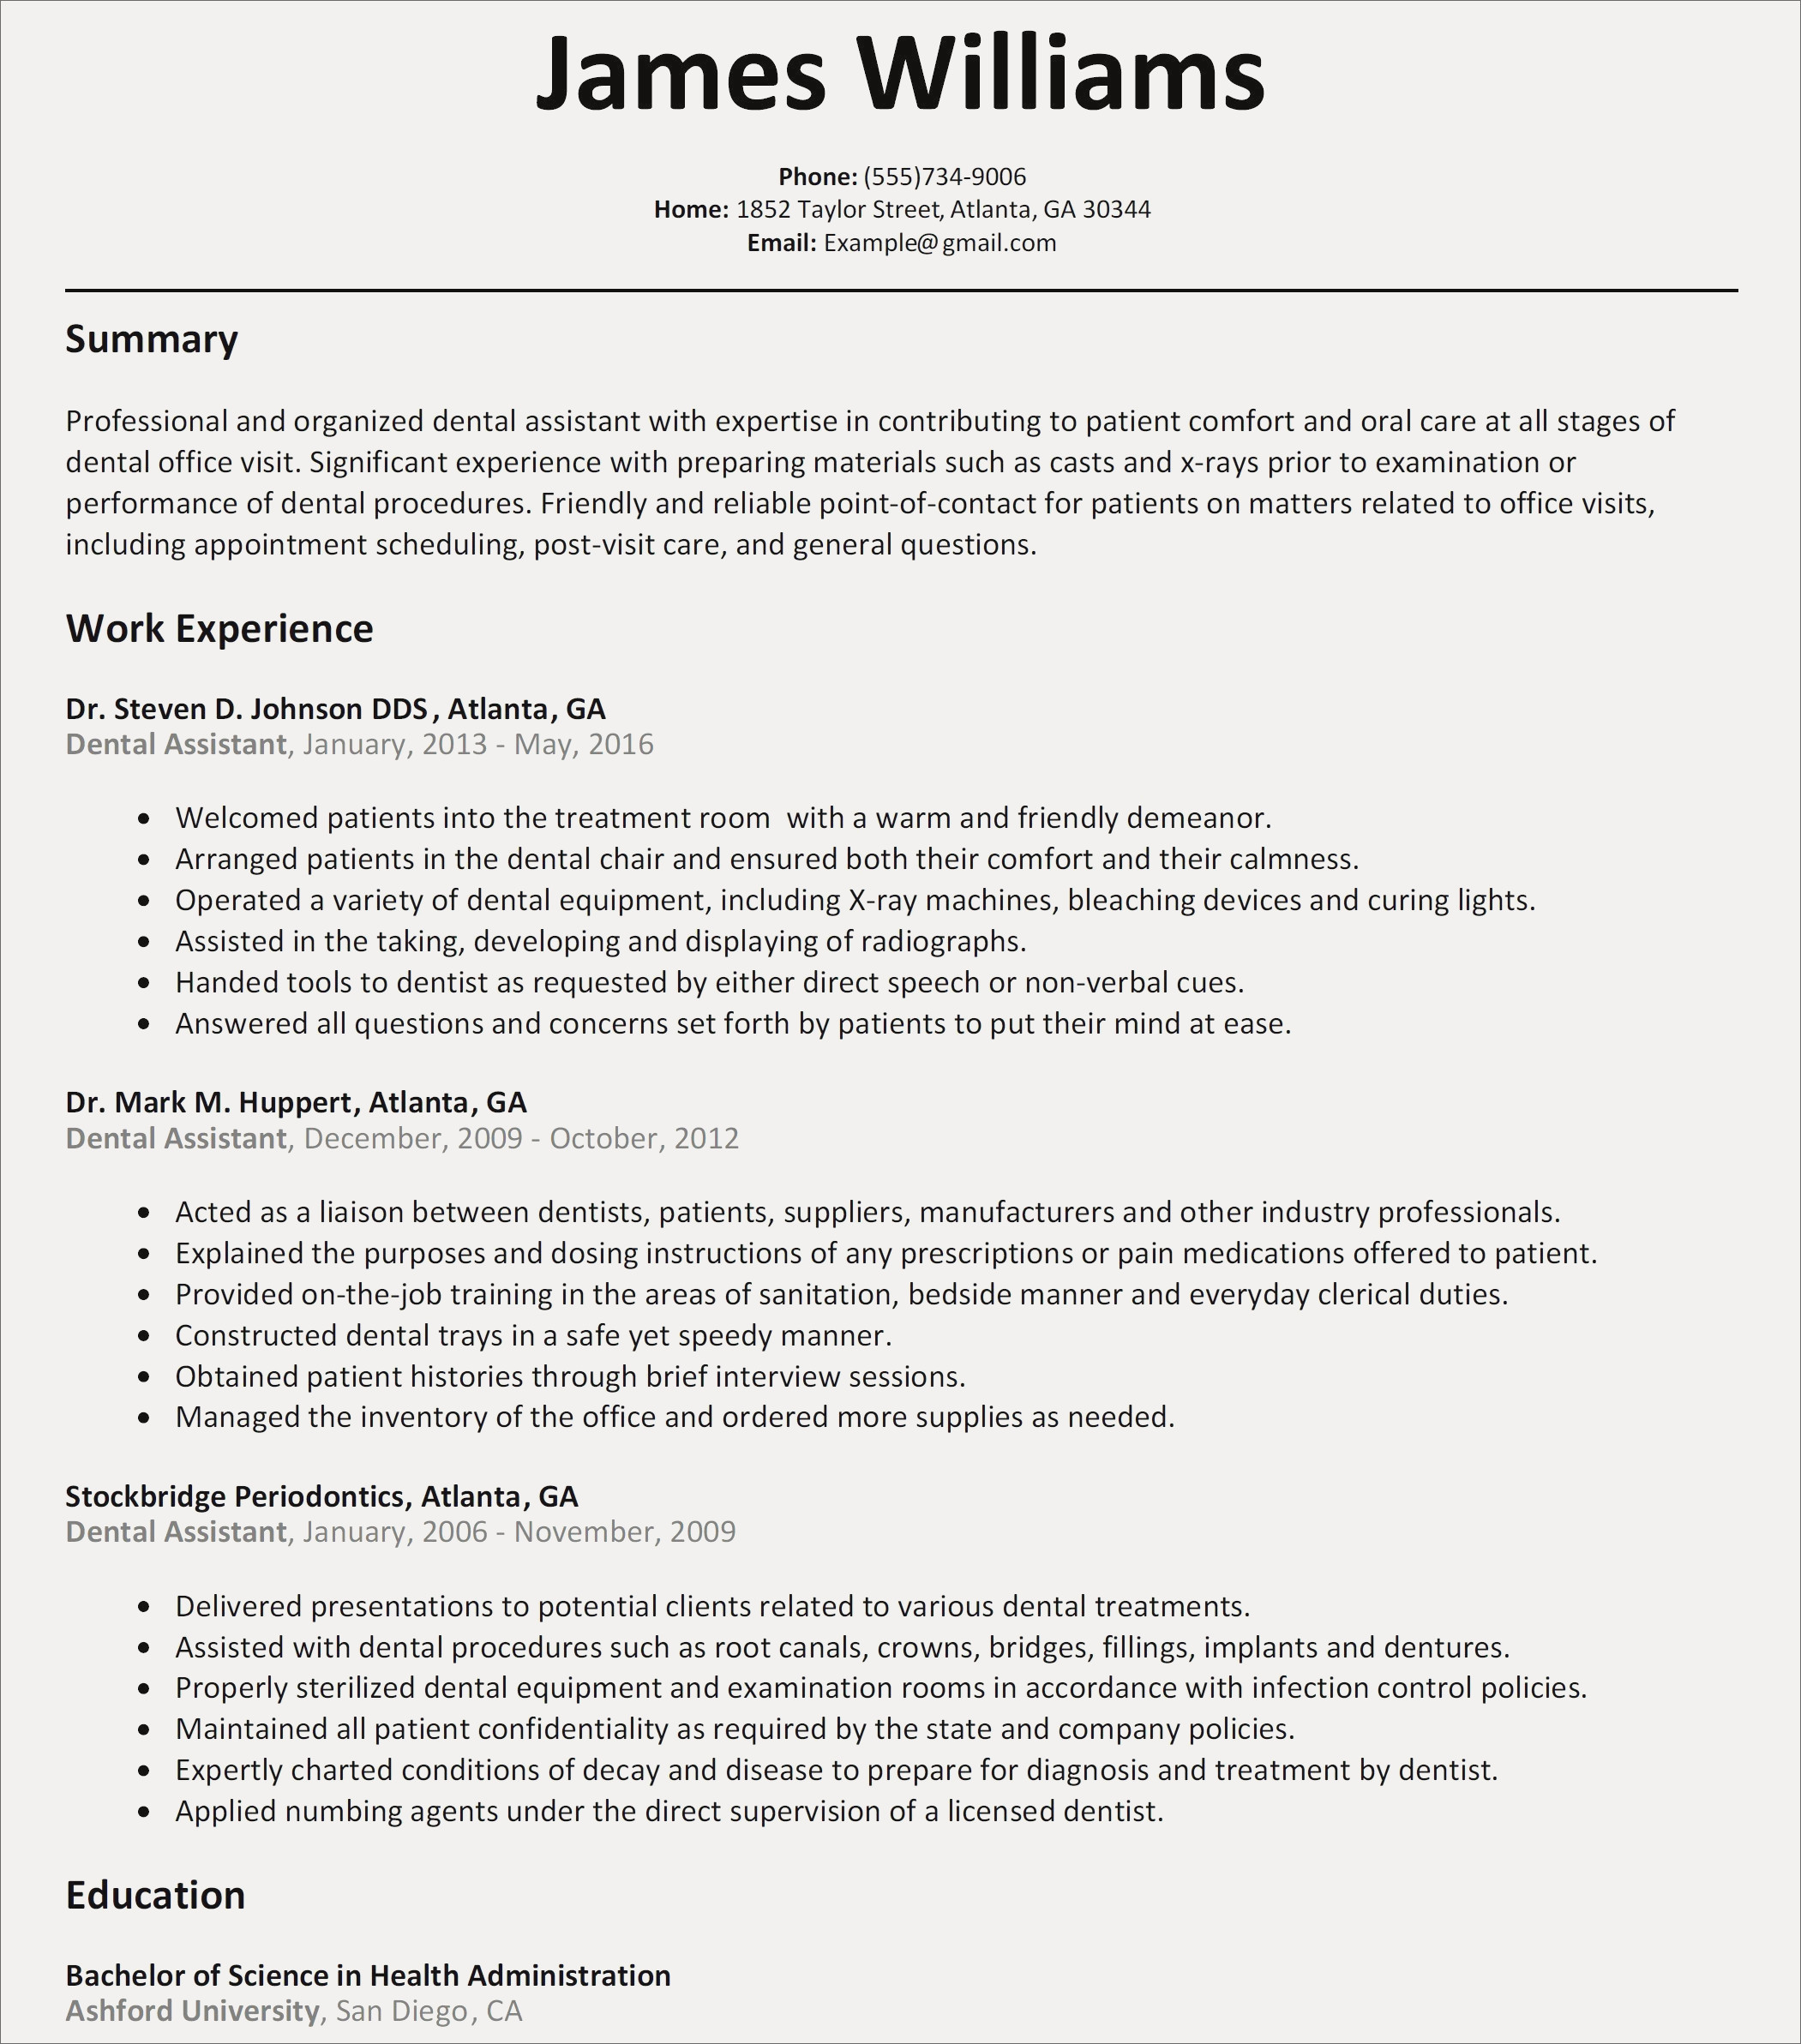 Best Resume Building Sites - How to Make A Resume Cove Best How to Write A Cover Letter for